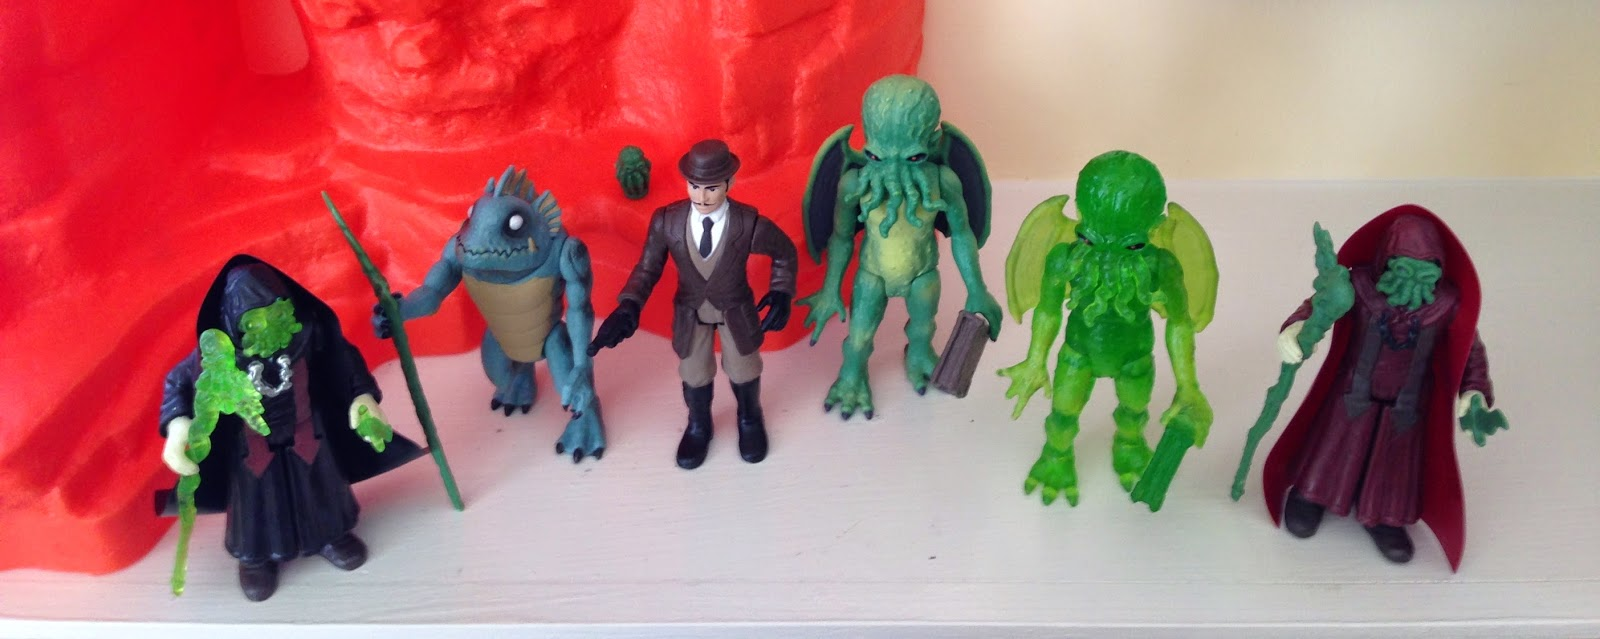 Lovecraft Figures